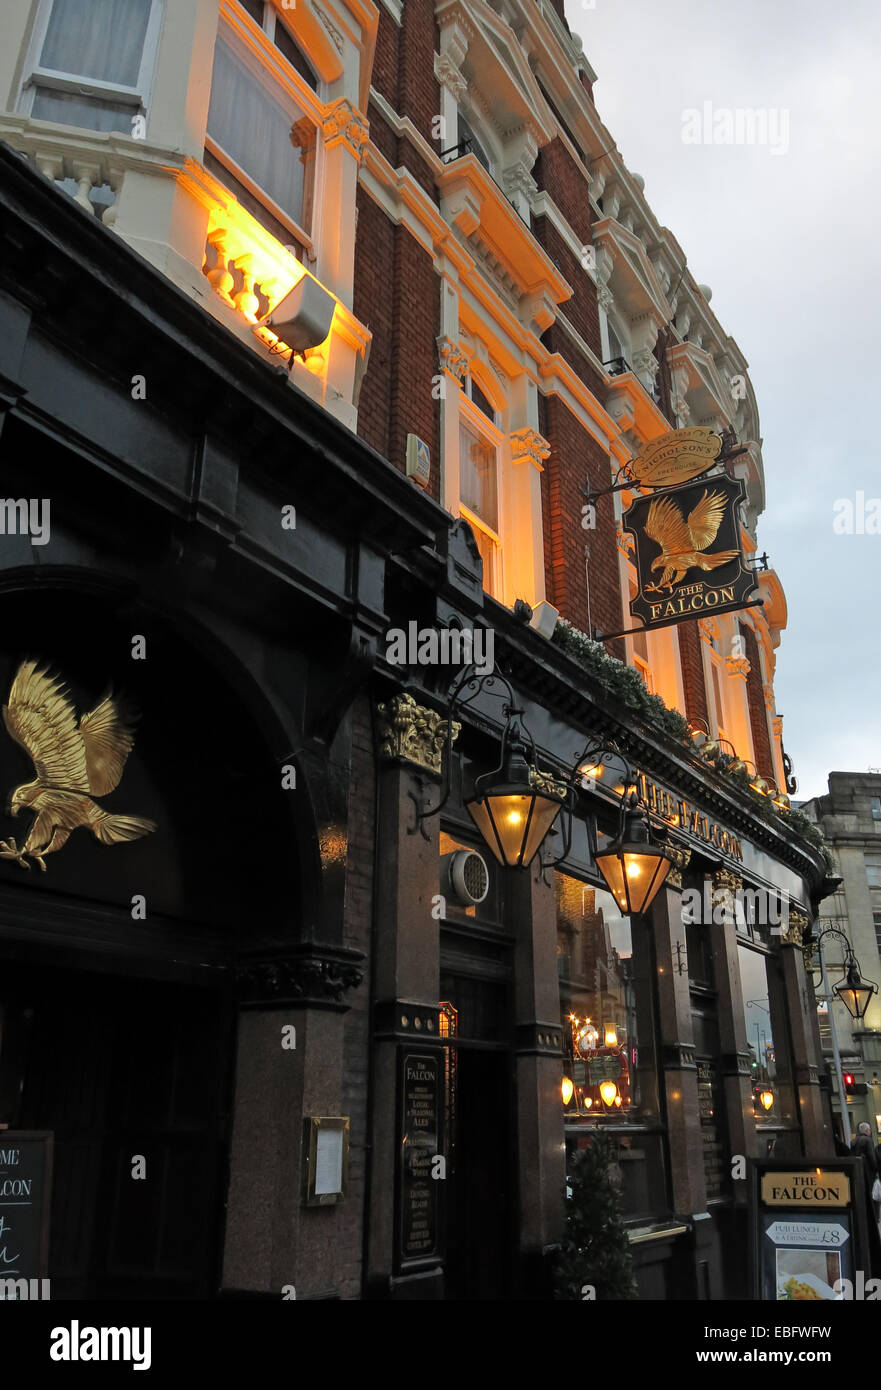 The Falcon Pub, Clapham Junction,Battersea, London, England,UK Stock Photo